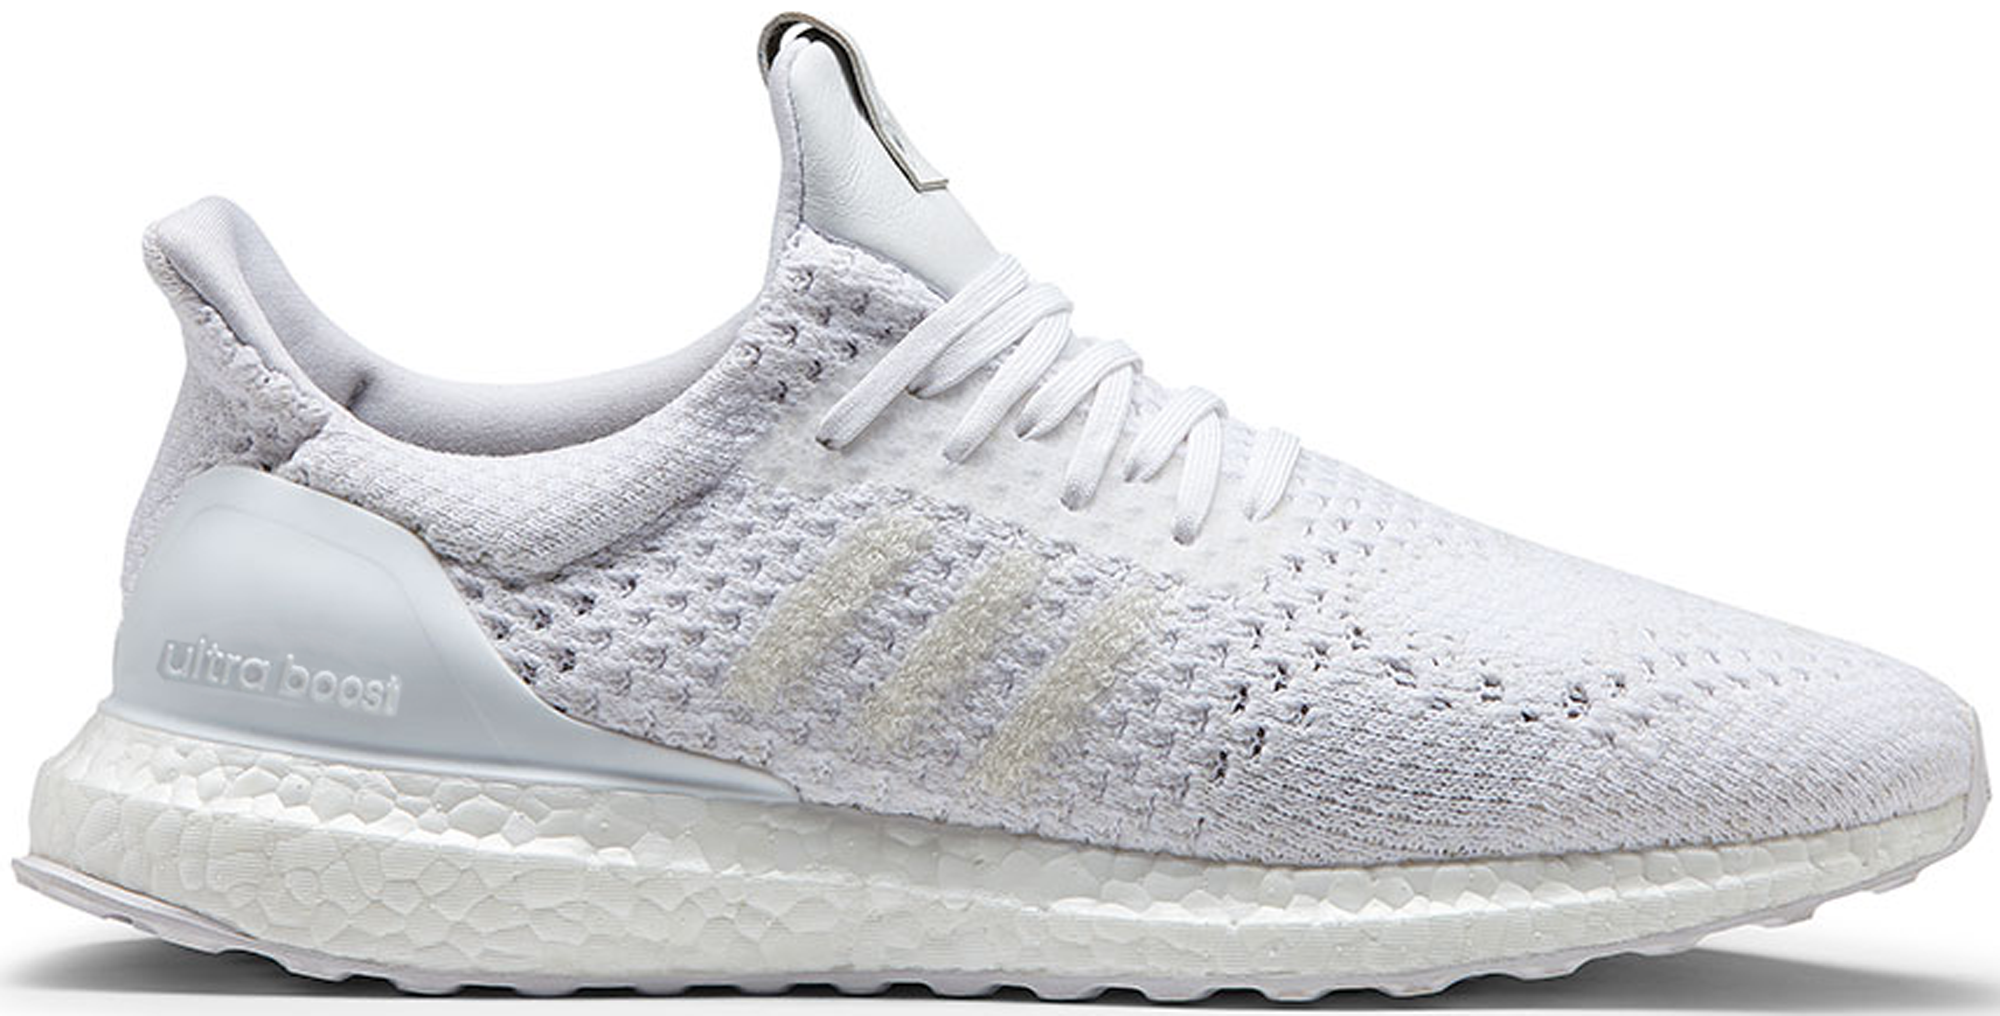 adidas Ultra Boost 4.0 A Ma Maniere x Invincible Merino Wool